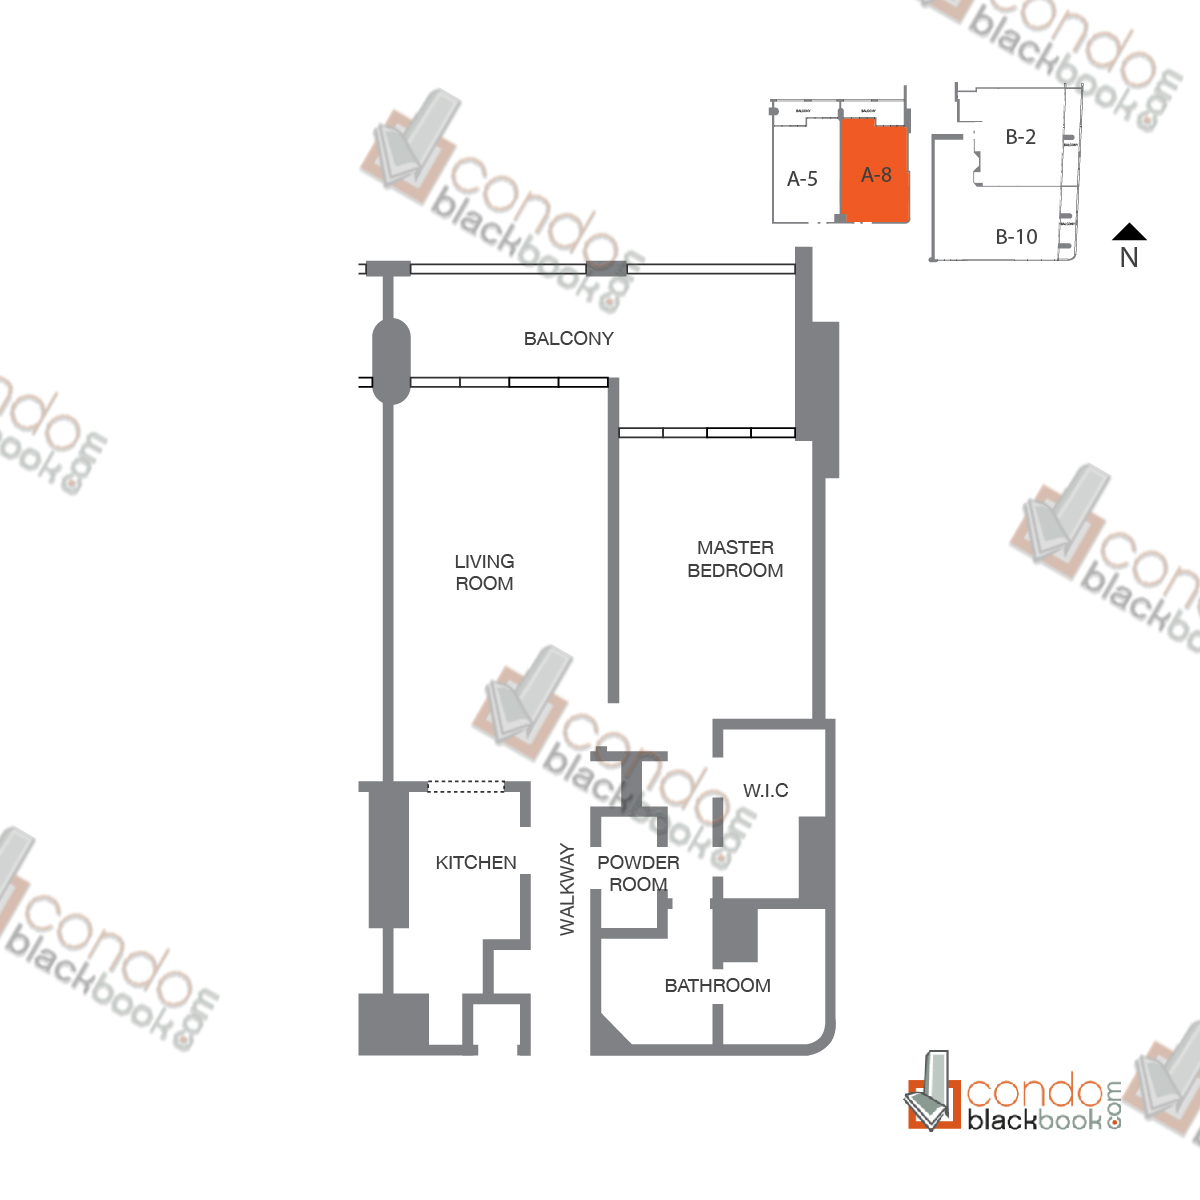 Floor plan for The Grand Arts & Entertainment District Miami, model Unit 50 (10-22), line A-1050 to A-2250, 1/1.5 bedrooms, 1,091 sq ft